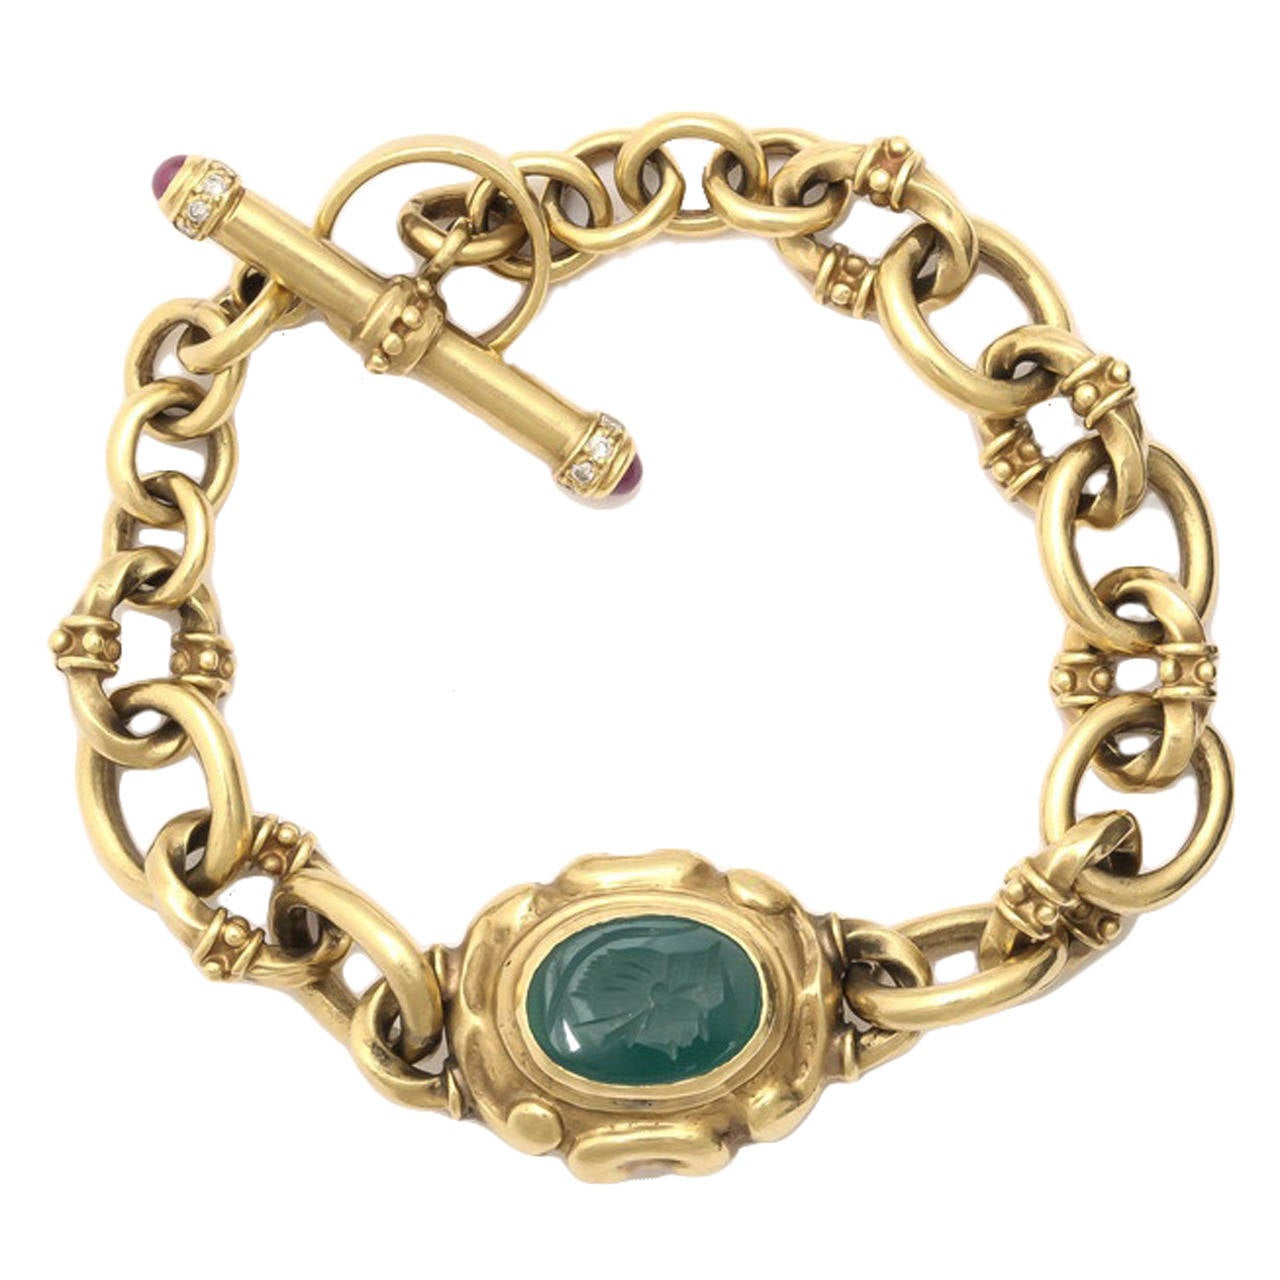 Italian Handmade Gold Bracelet with Toggle and Ring Closing